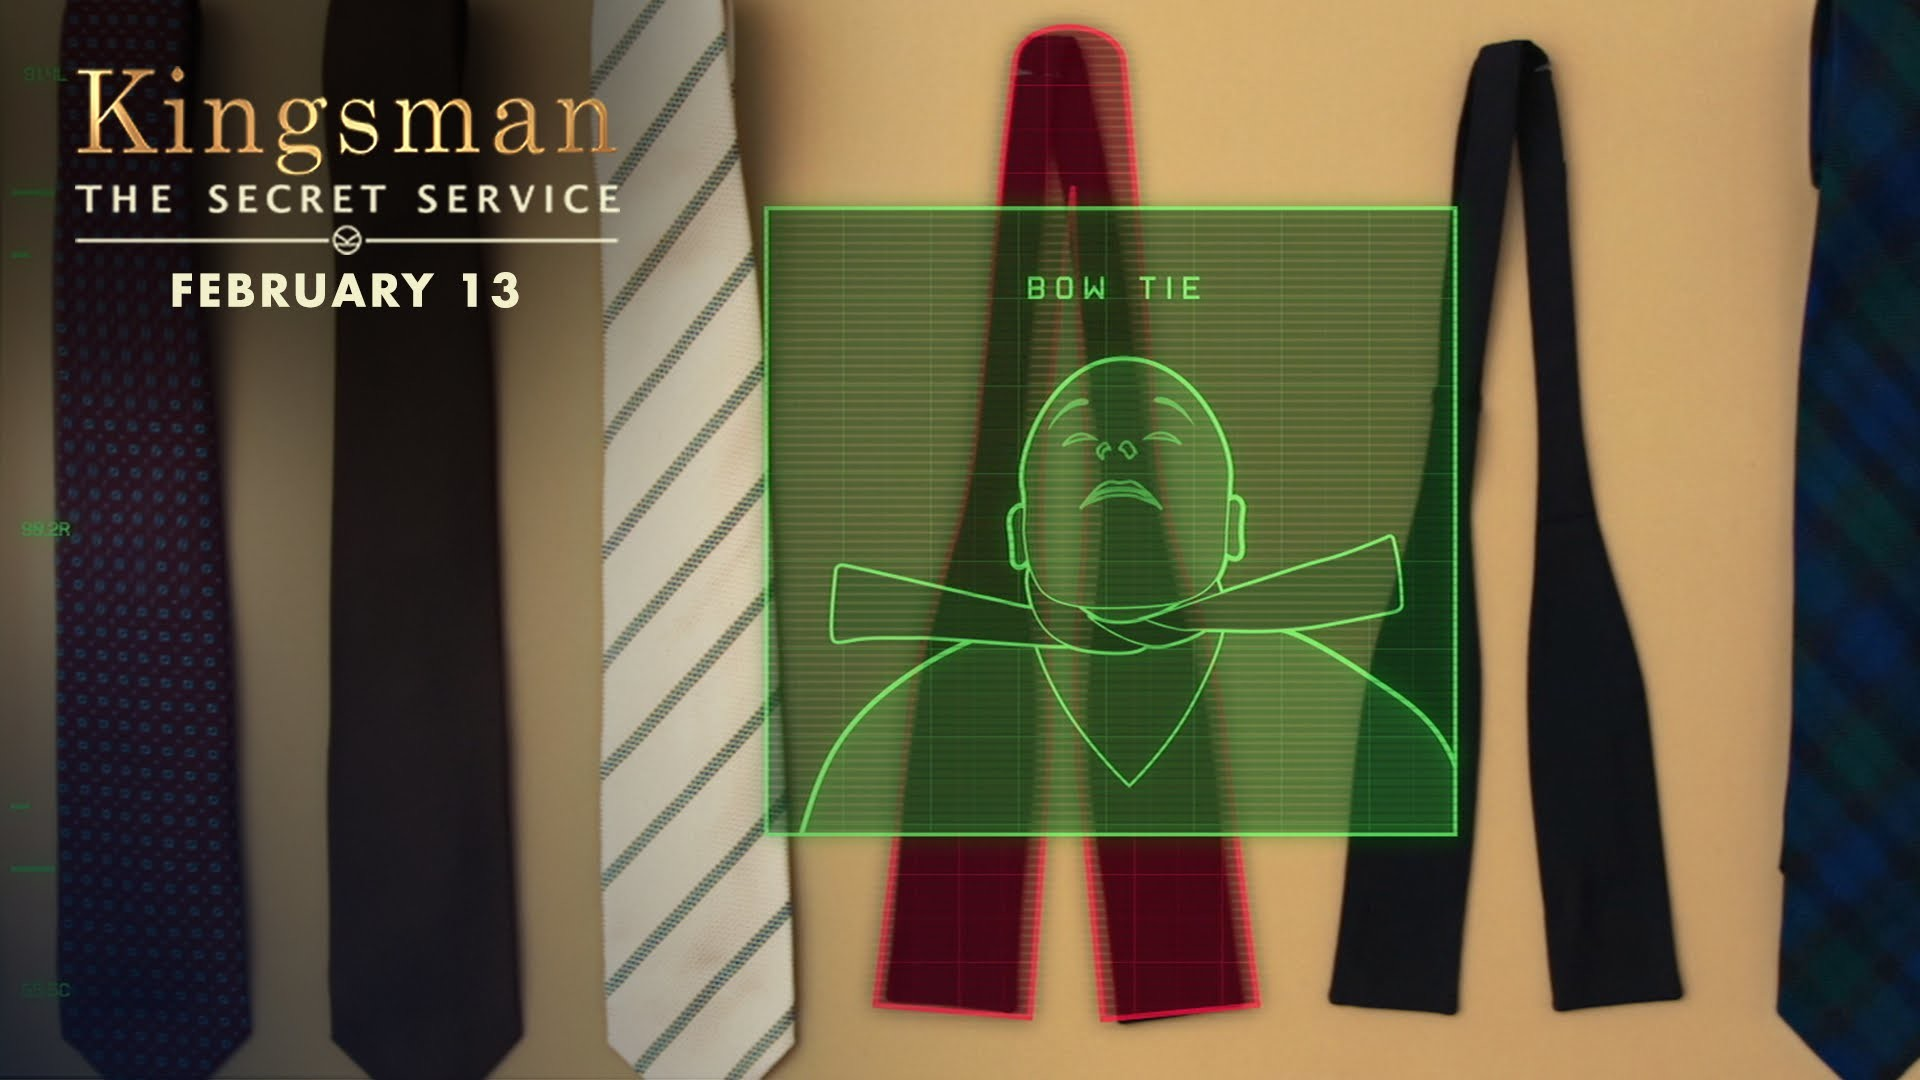 1920x1080 Kingsman: The Secret Service | How To Be A Kingsman: Tying A Tie [HD] |  20th Century FOX - YouTube